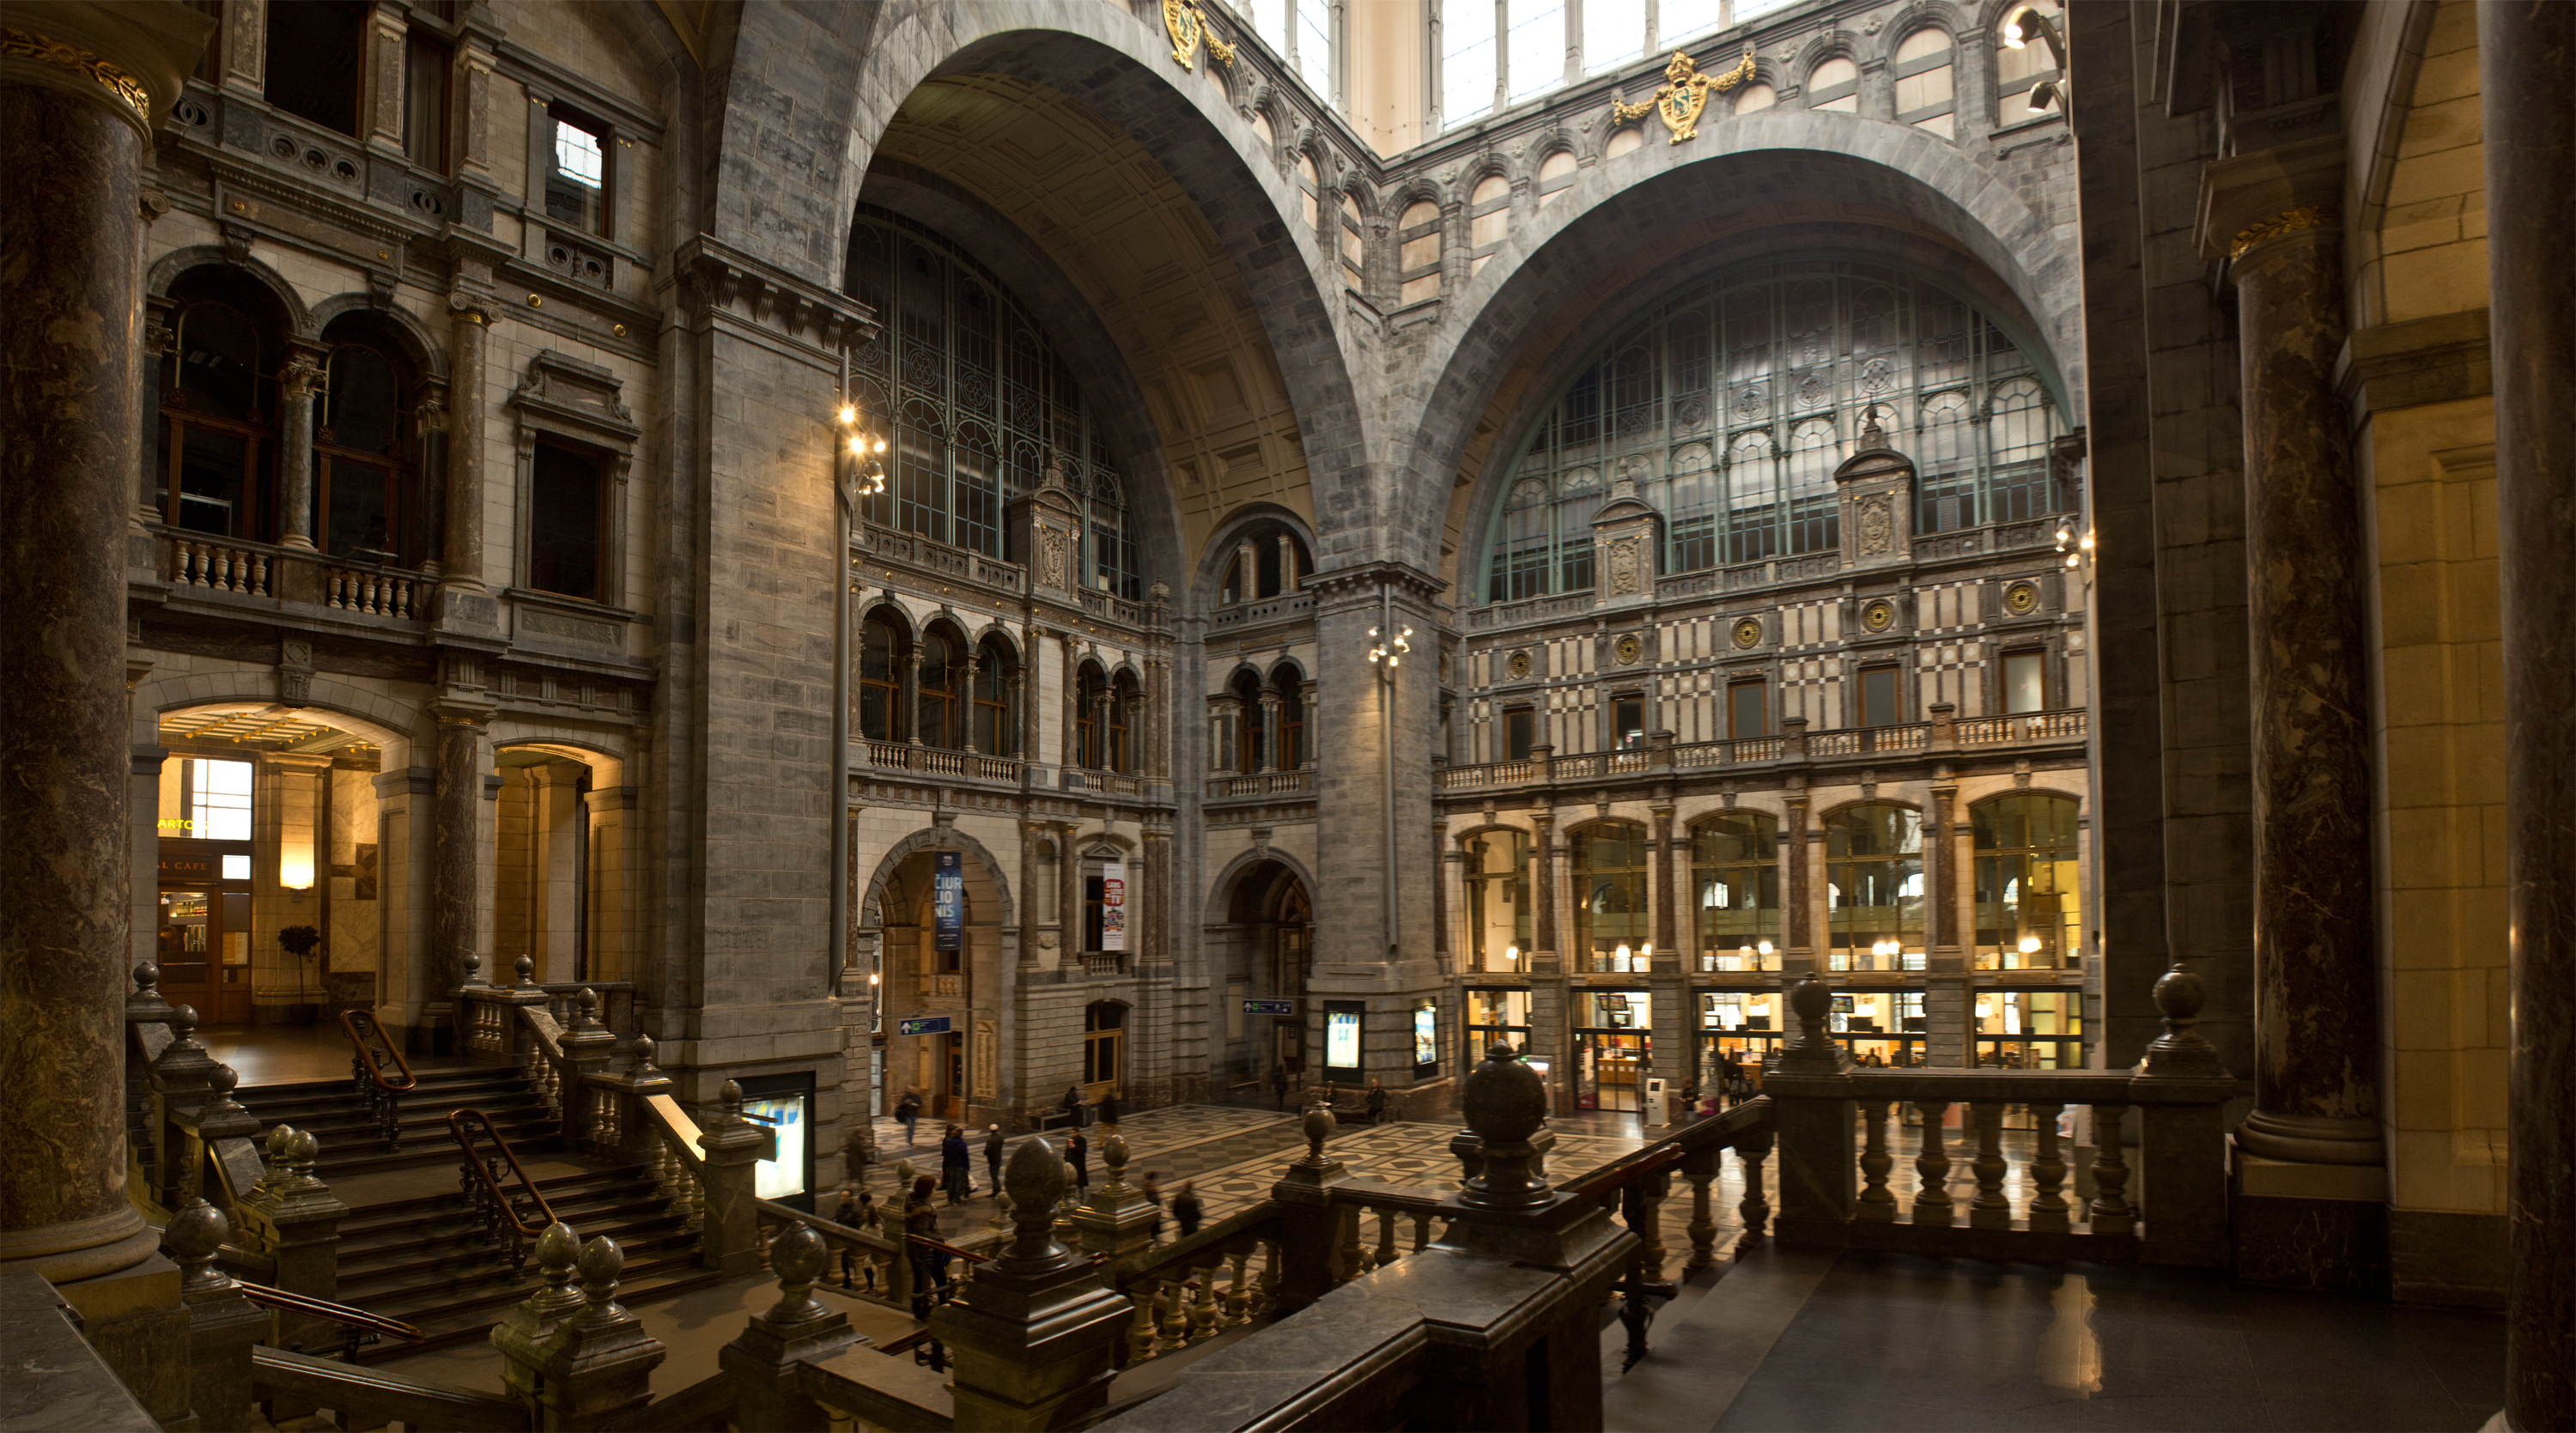 File:7051 interieur centraal station antwerpen 2.jpg - Wikimedia Commons